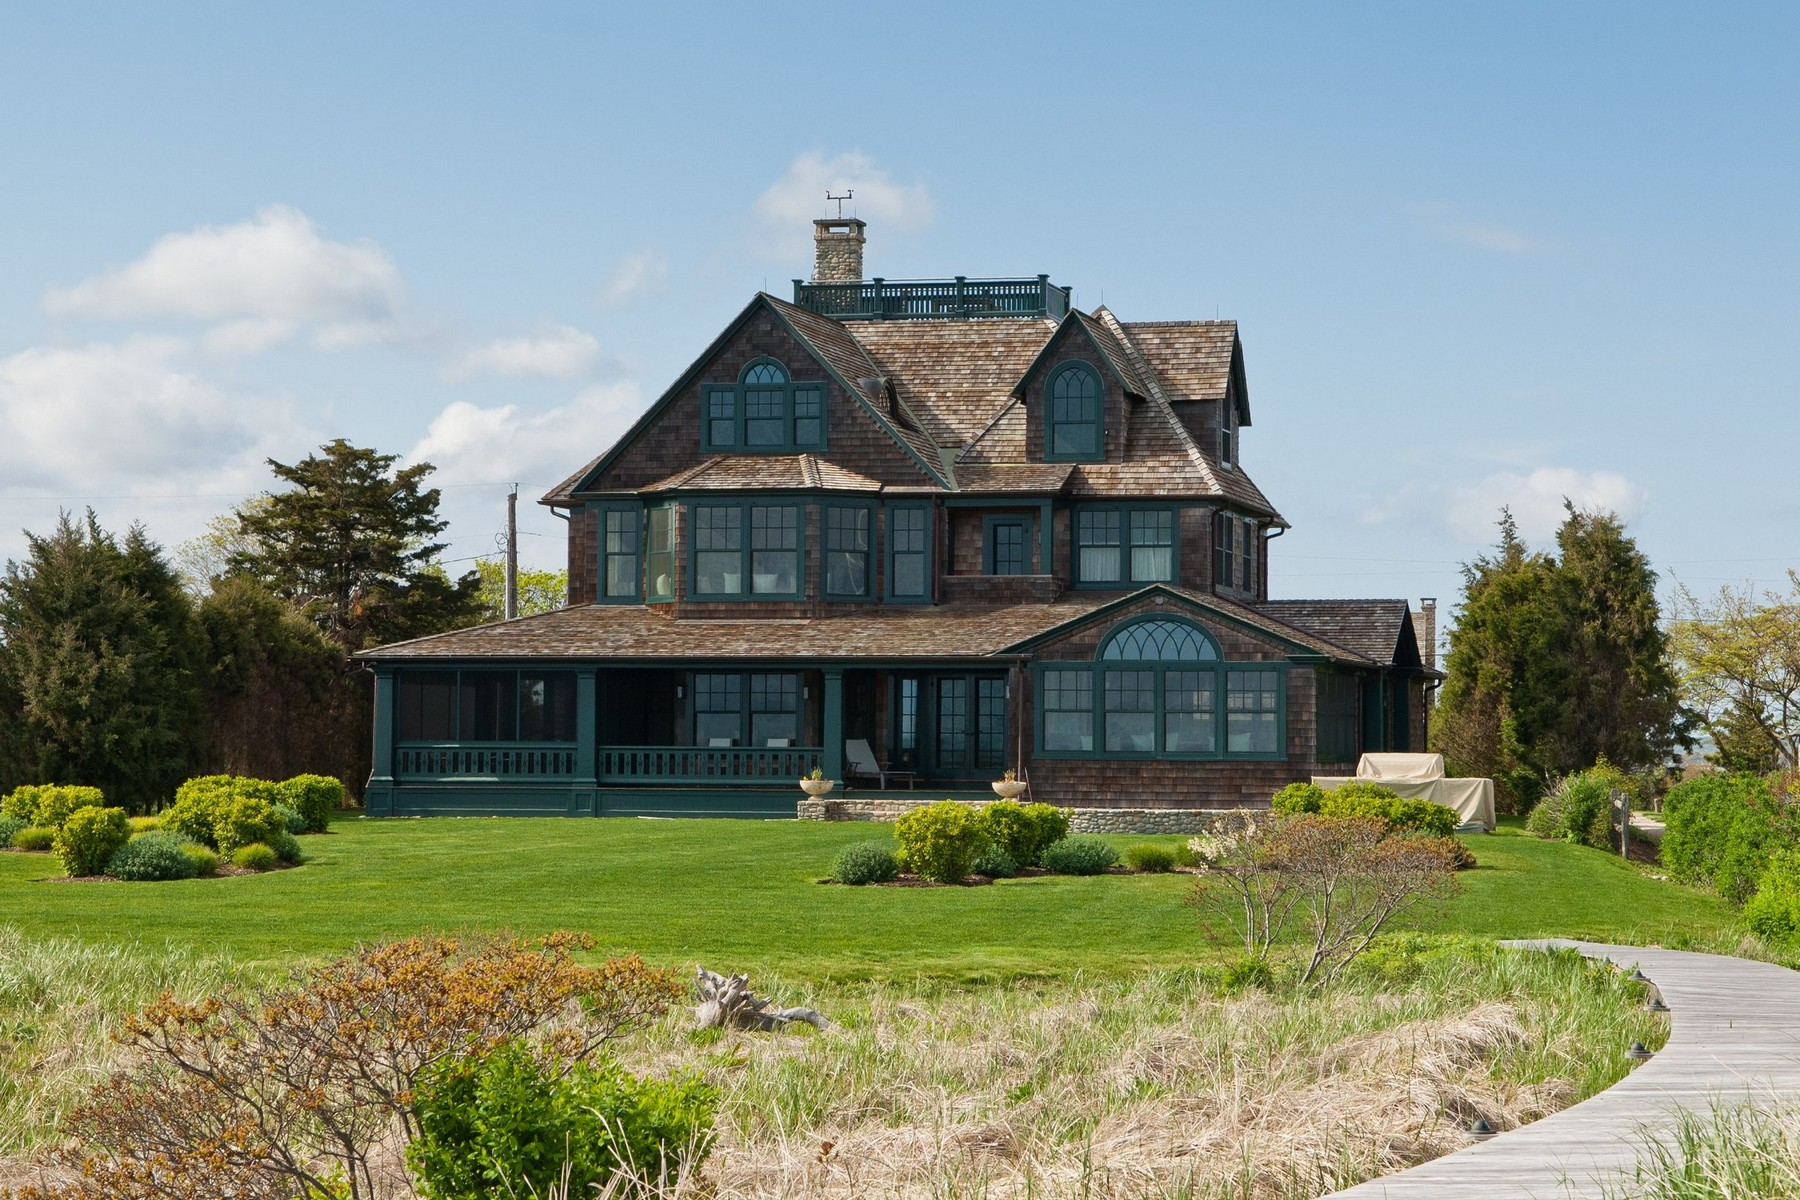 Single Family Home for Sale at Magical Seaside Enclave of Fenwick 102 A Sequassen Ave Old Saybrook, Connecticut, 06475 United States